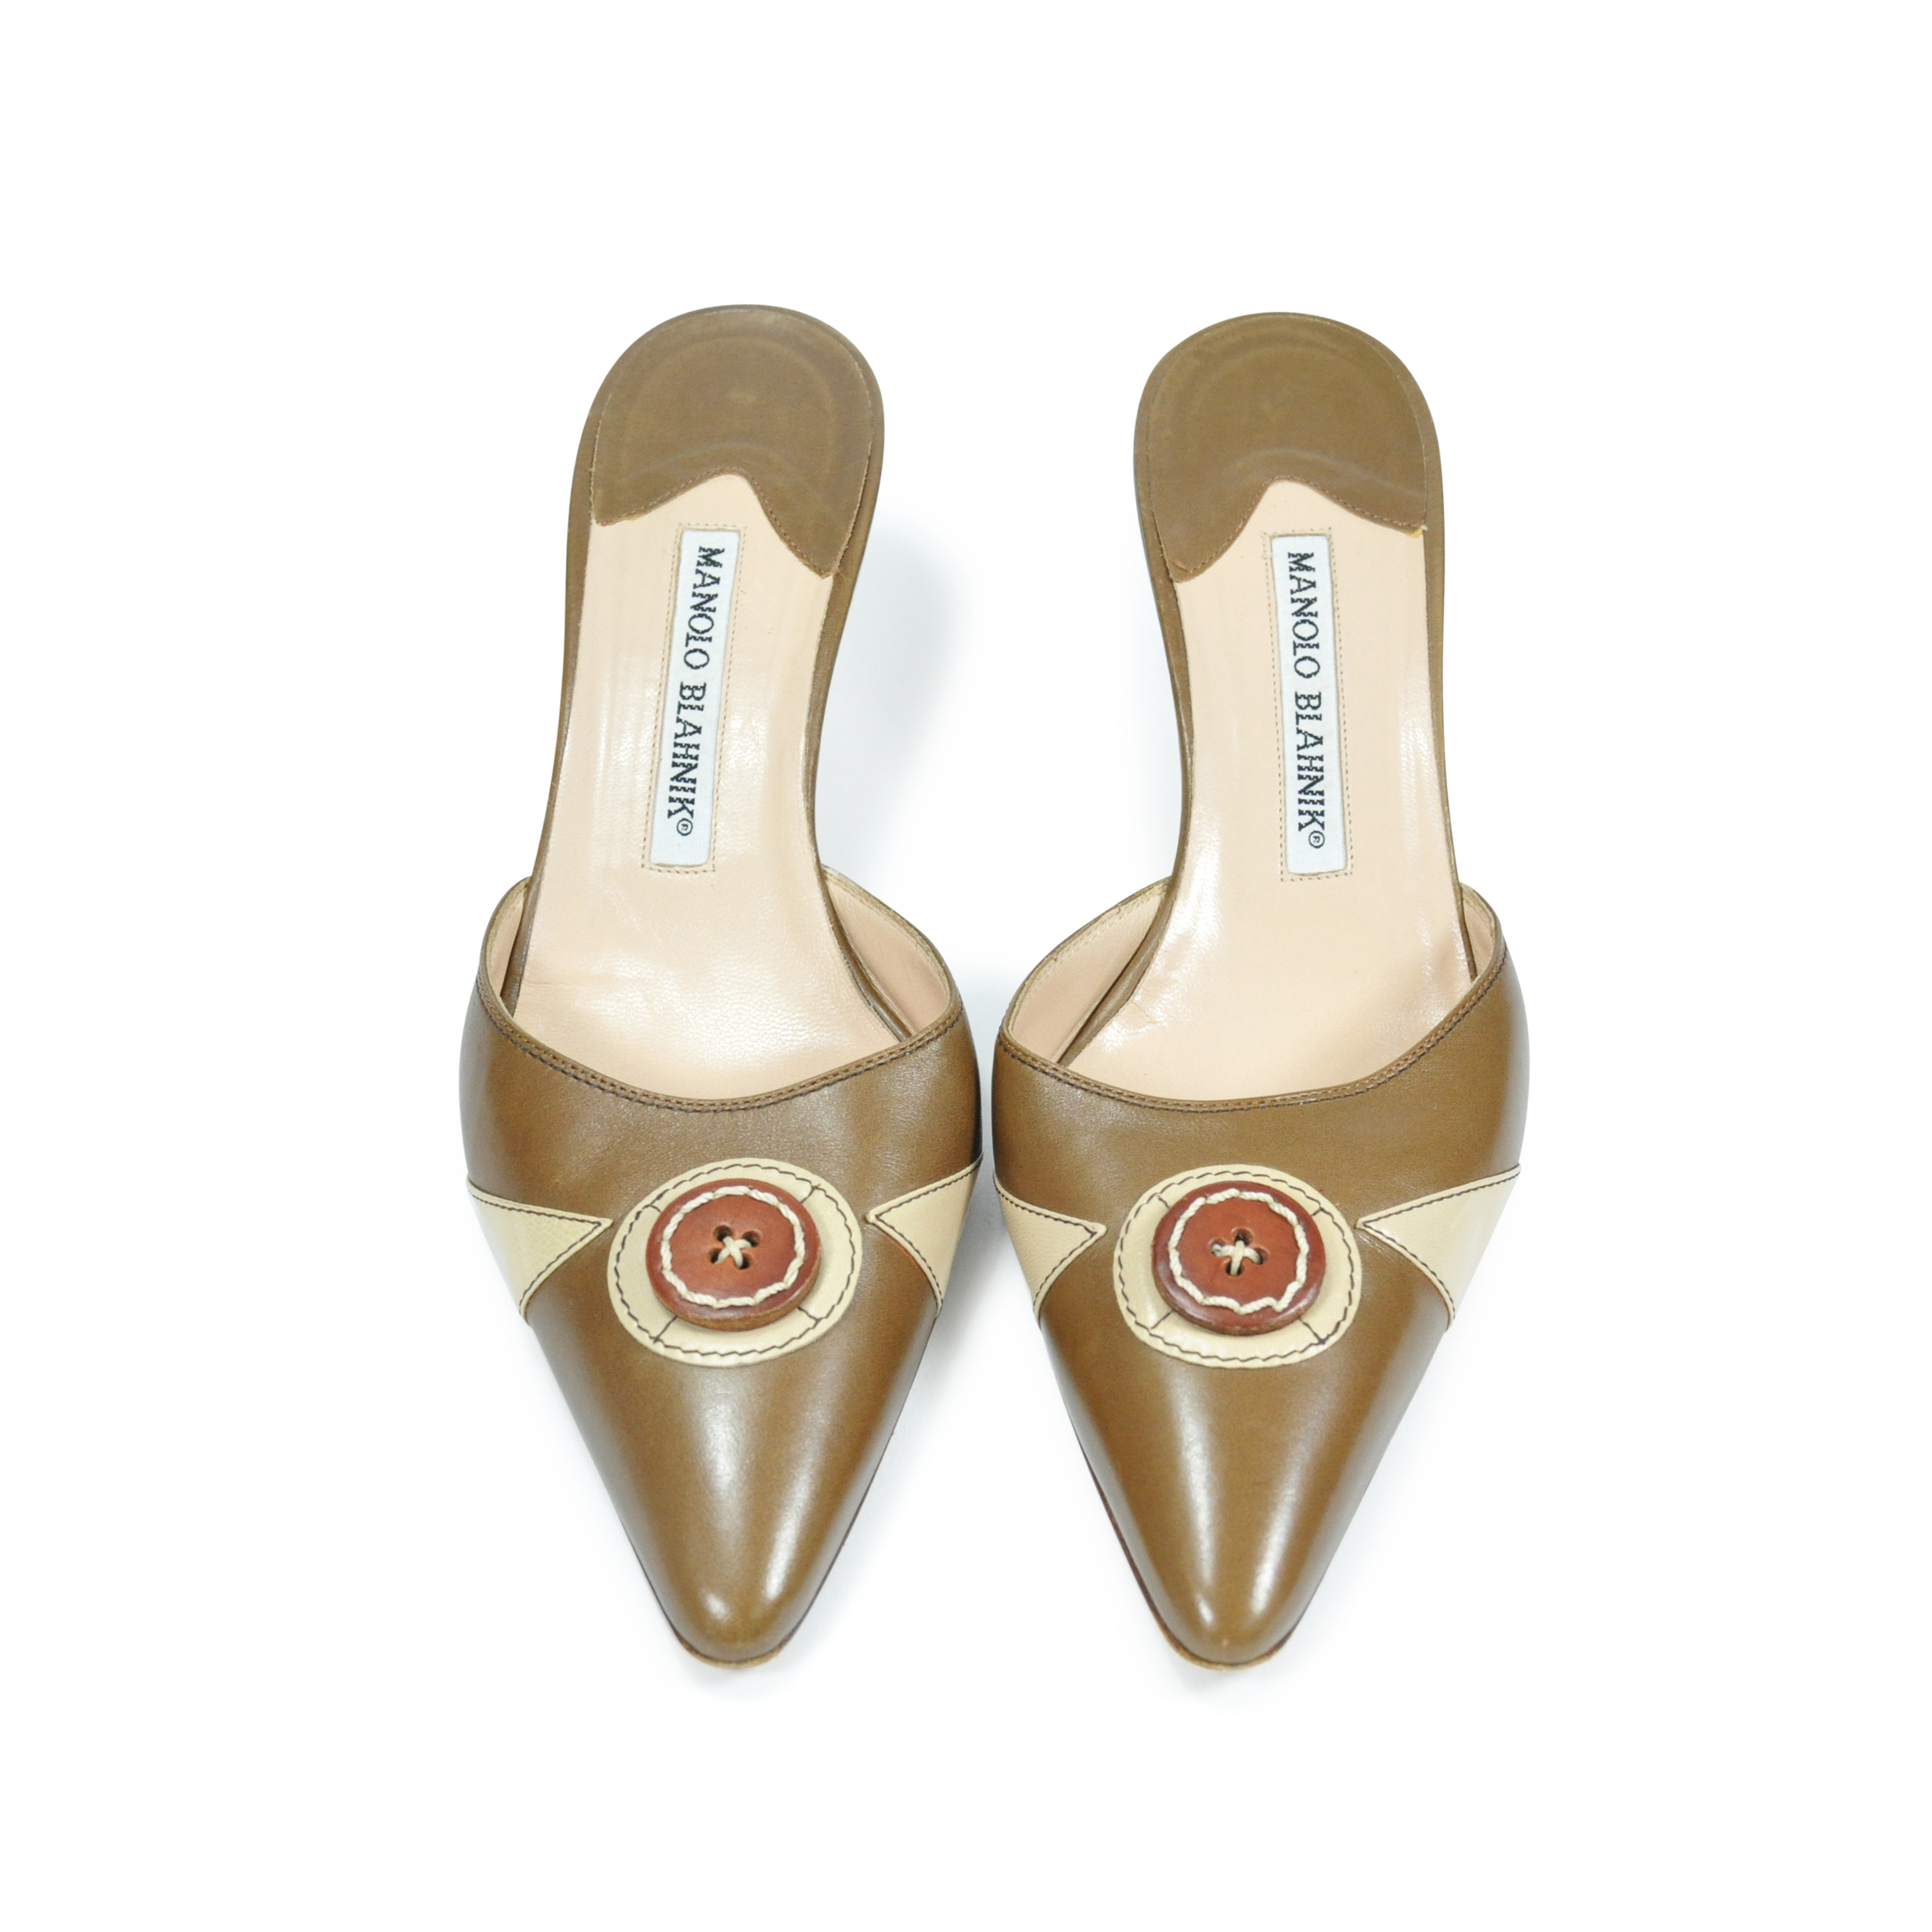 dc56fdcd3 Authentic Second Hand Manolo Blahnik Pointed Button Detail Kitten Mules  (PSS-067-00008) - THE FIFTH COLLECTION